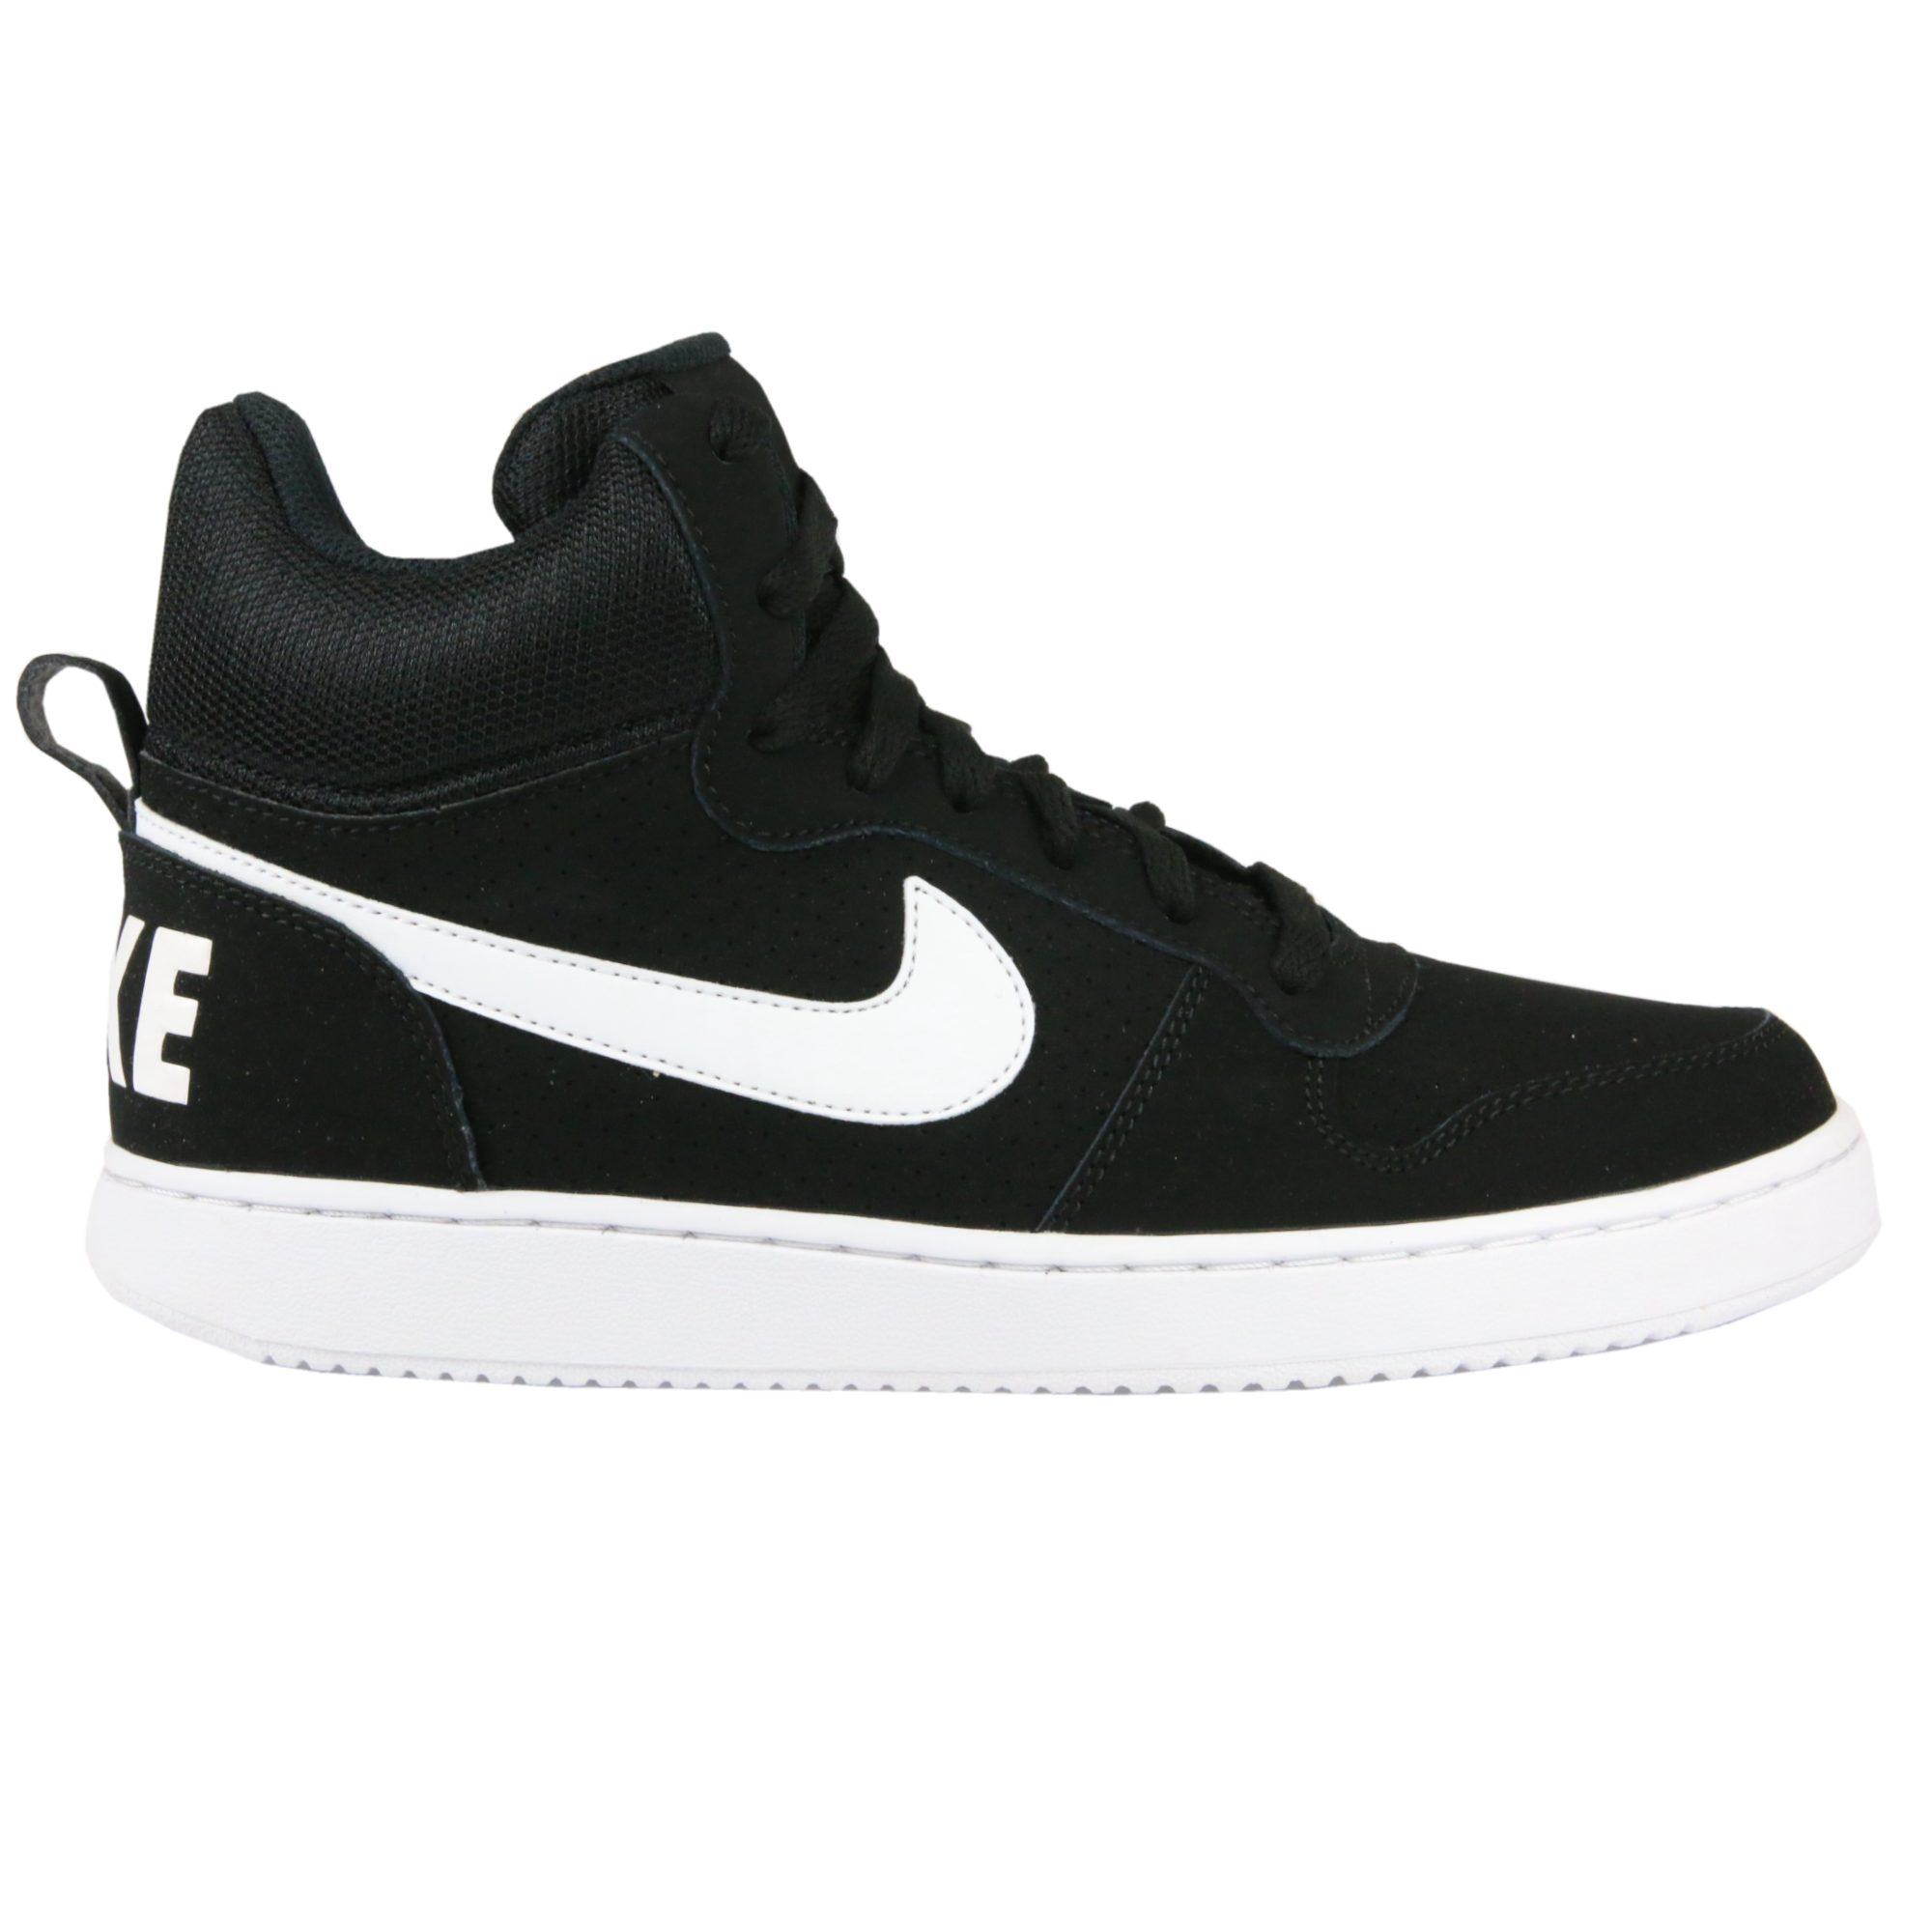 nike court borough mid schuhe turnscuhe sneaker high top damen schwarz ebay. Black Bedroom Furniture Sets. Home Design Ideas